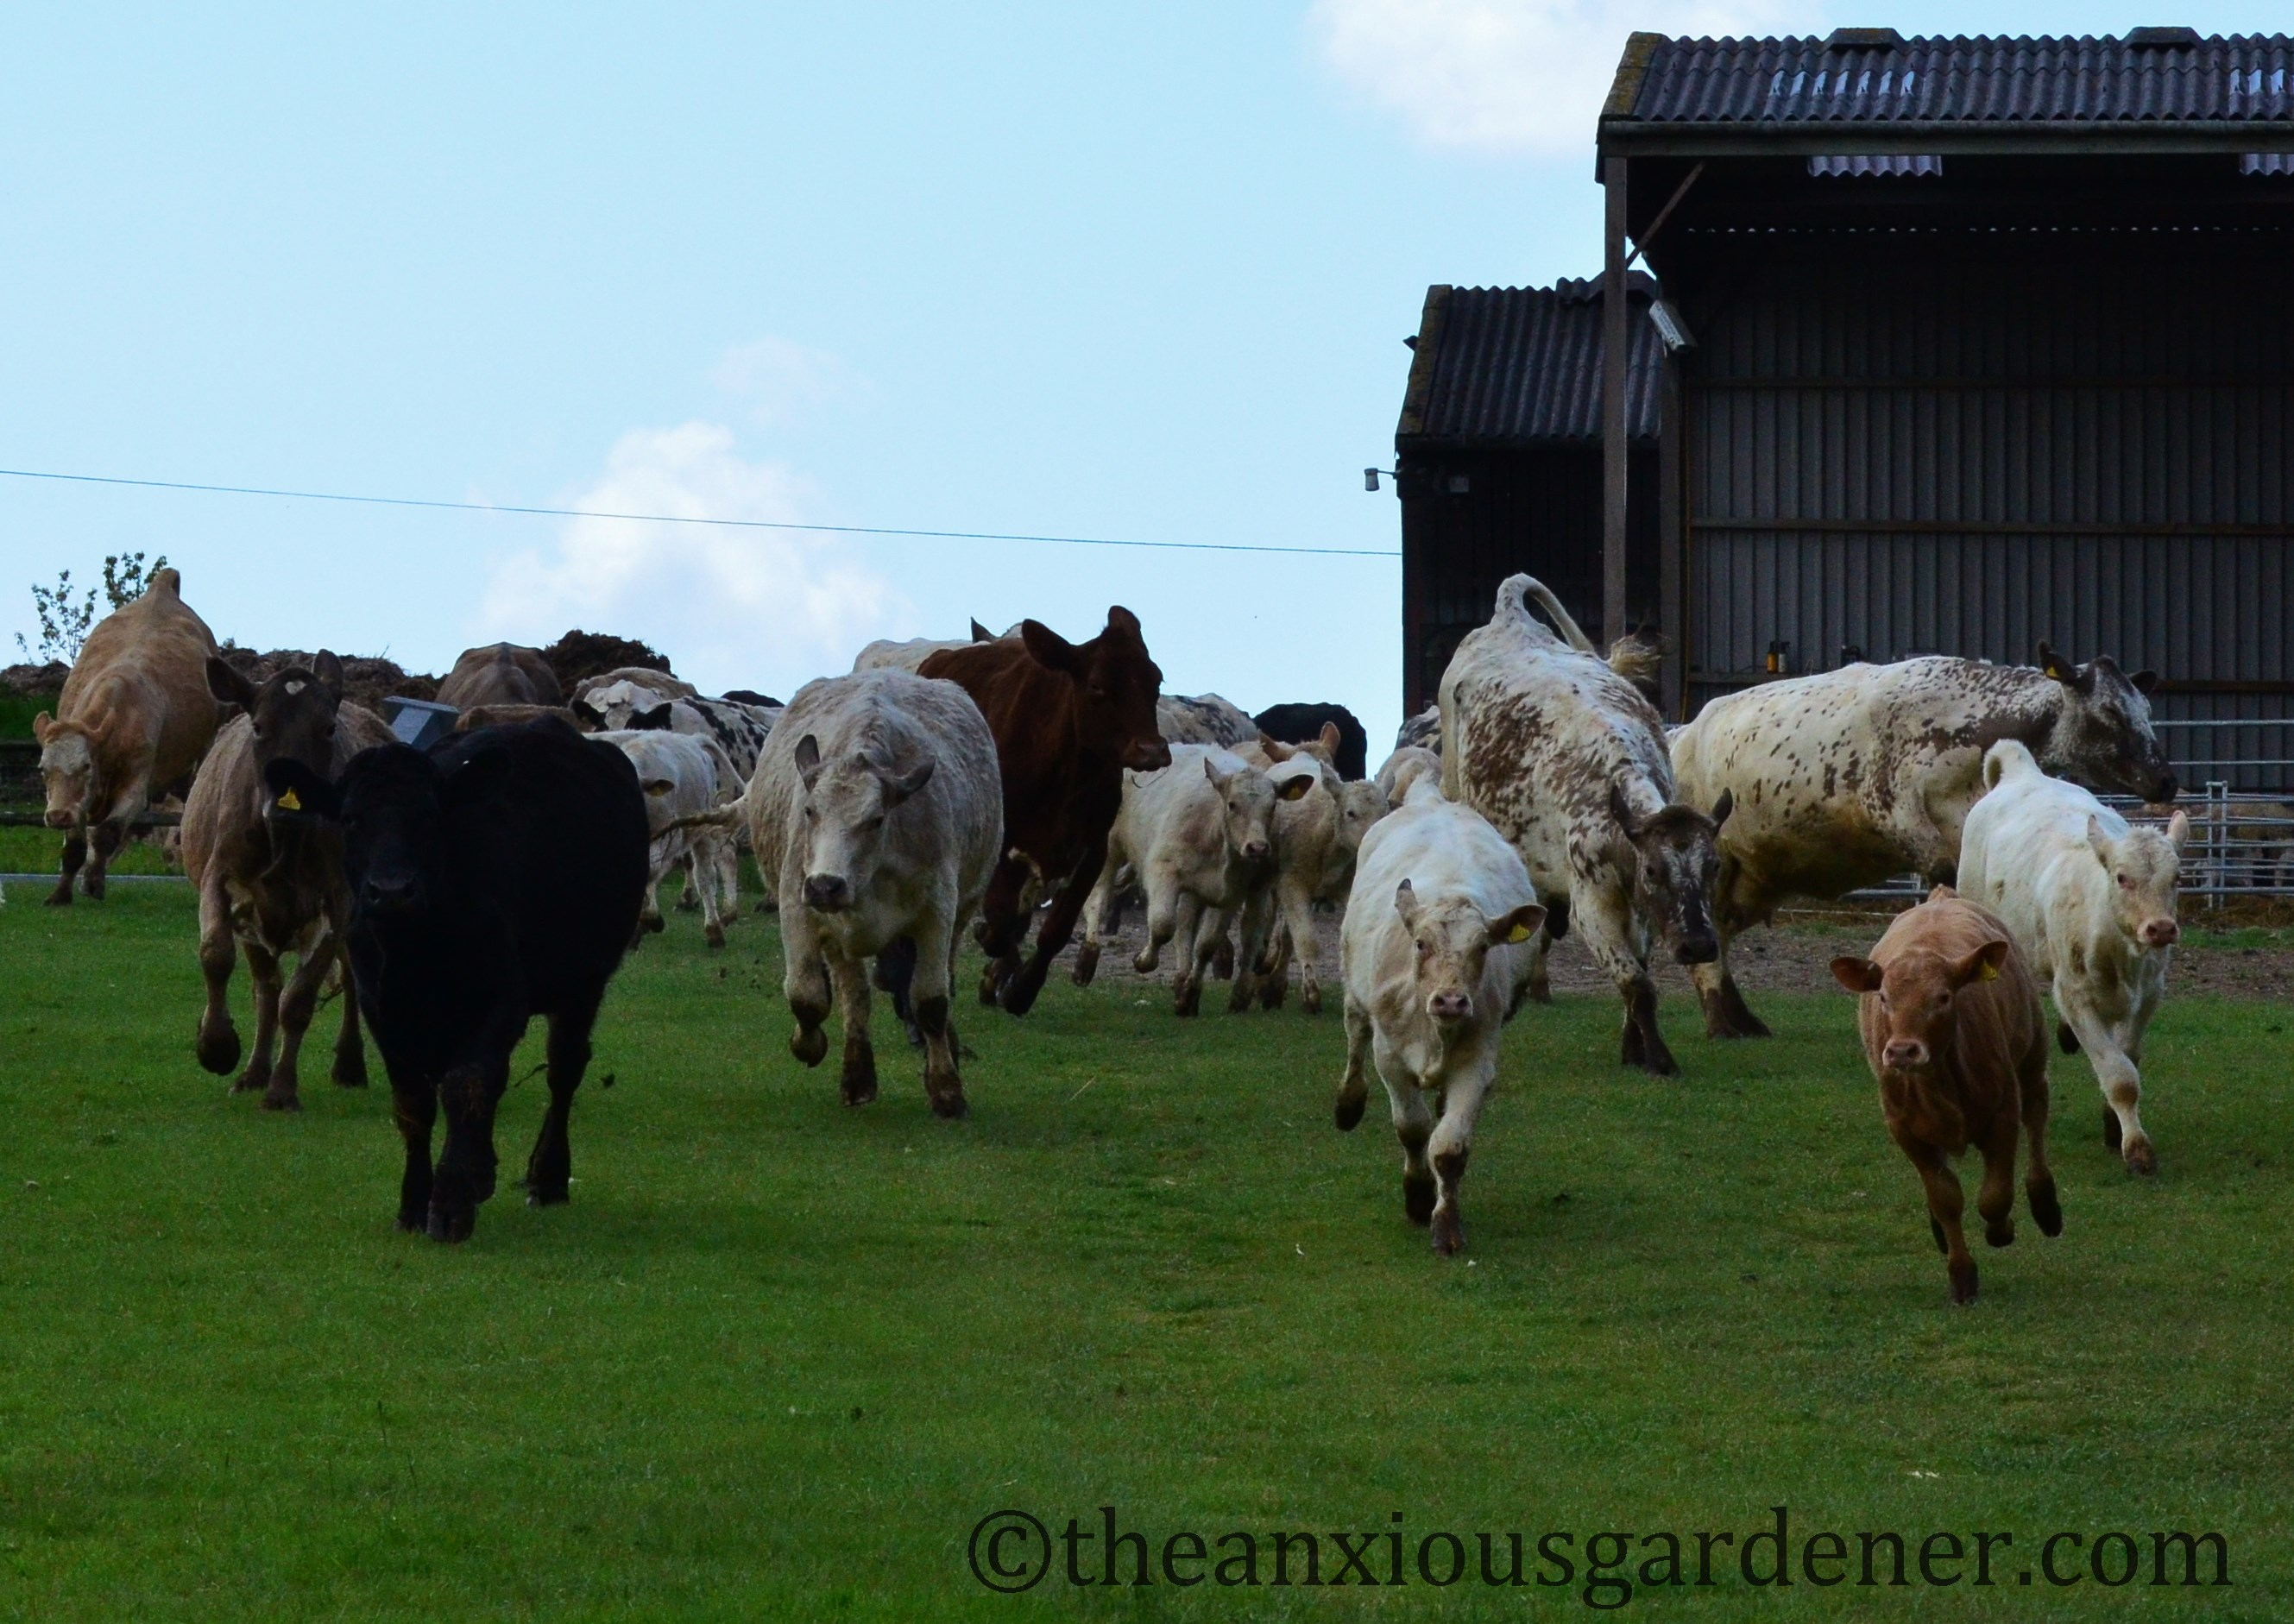 A Stampede Of Cows The Anxious Gardener